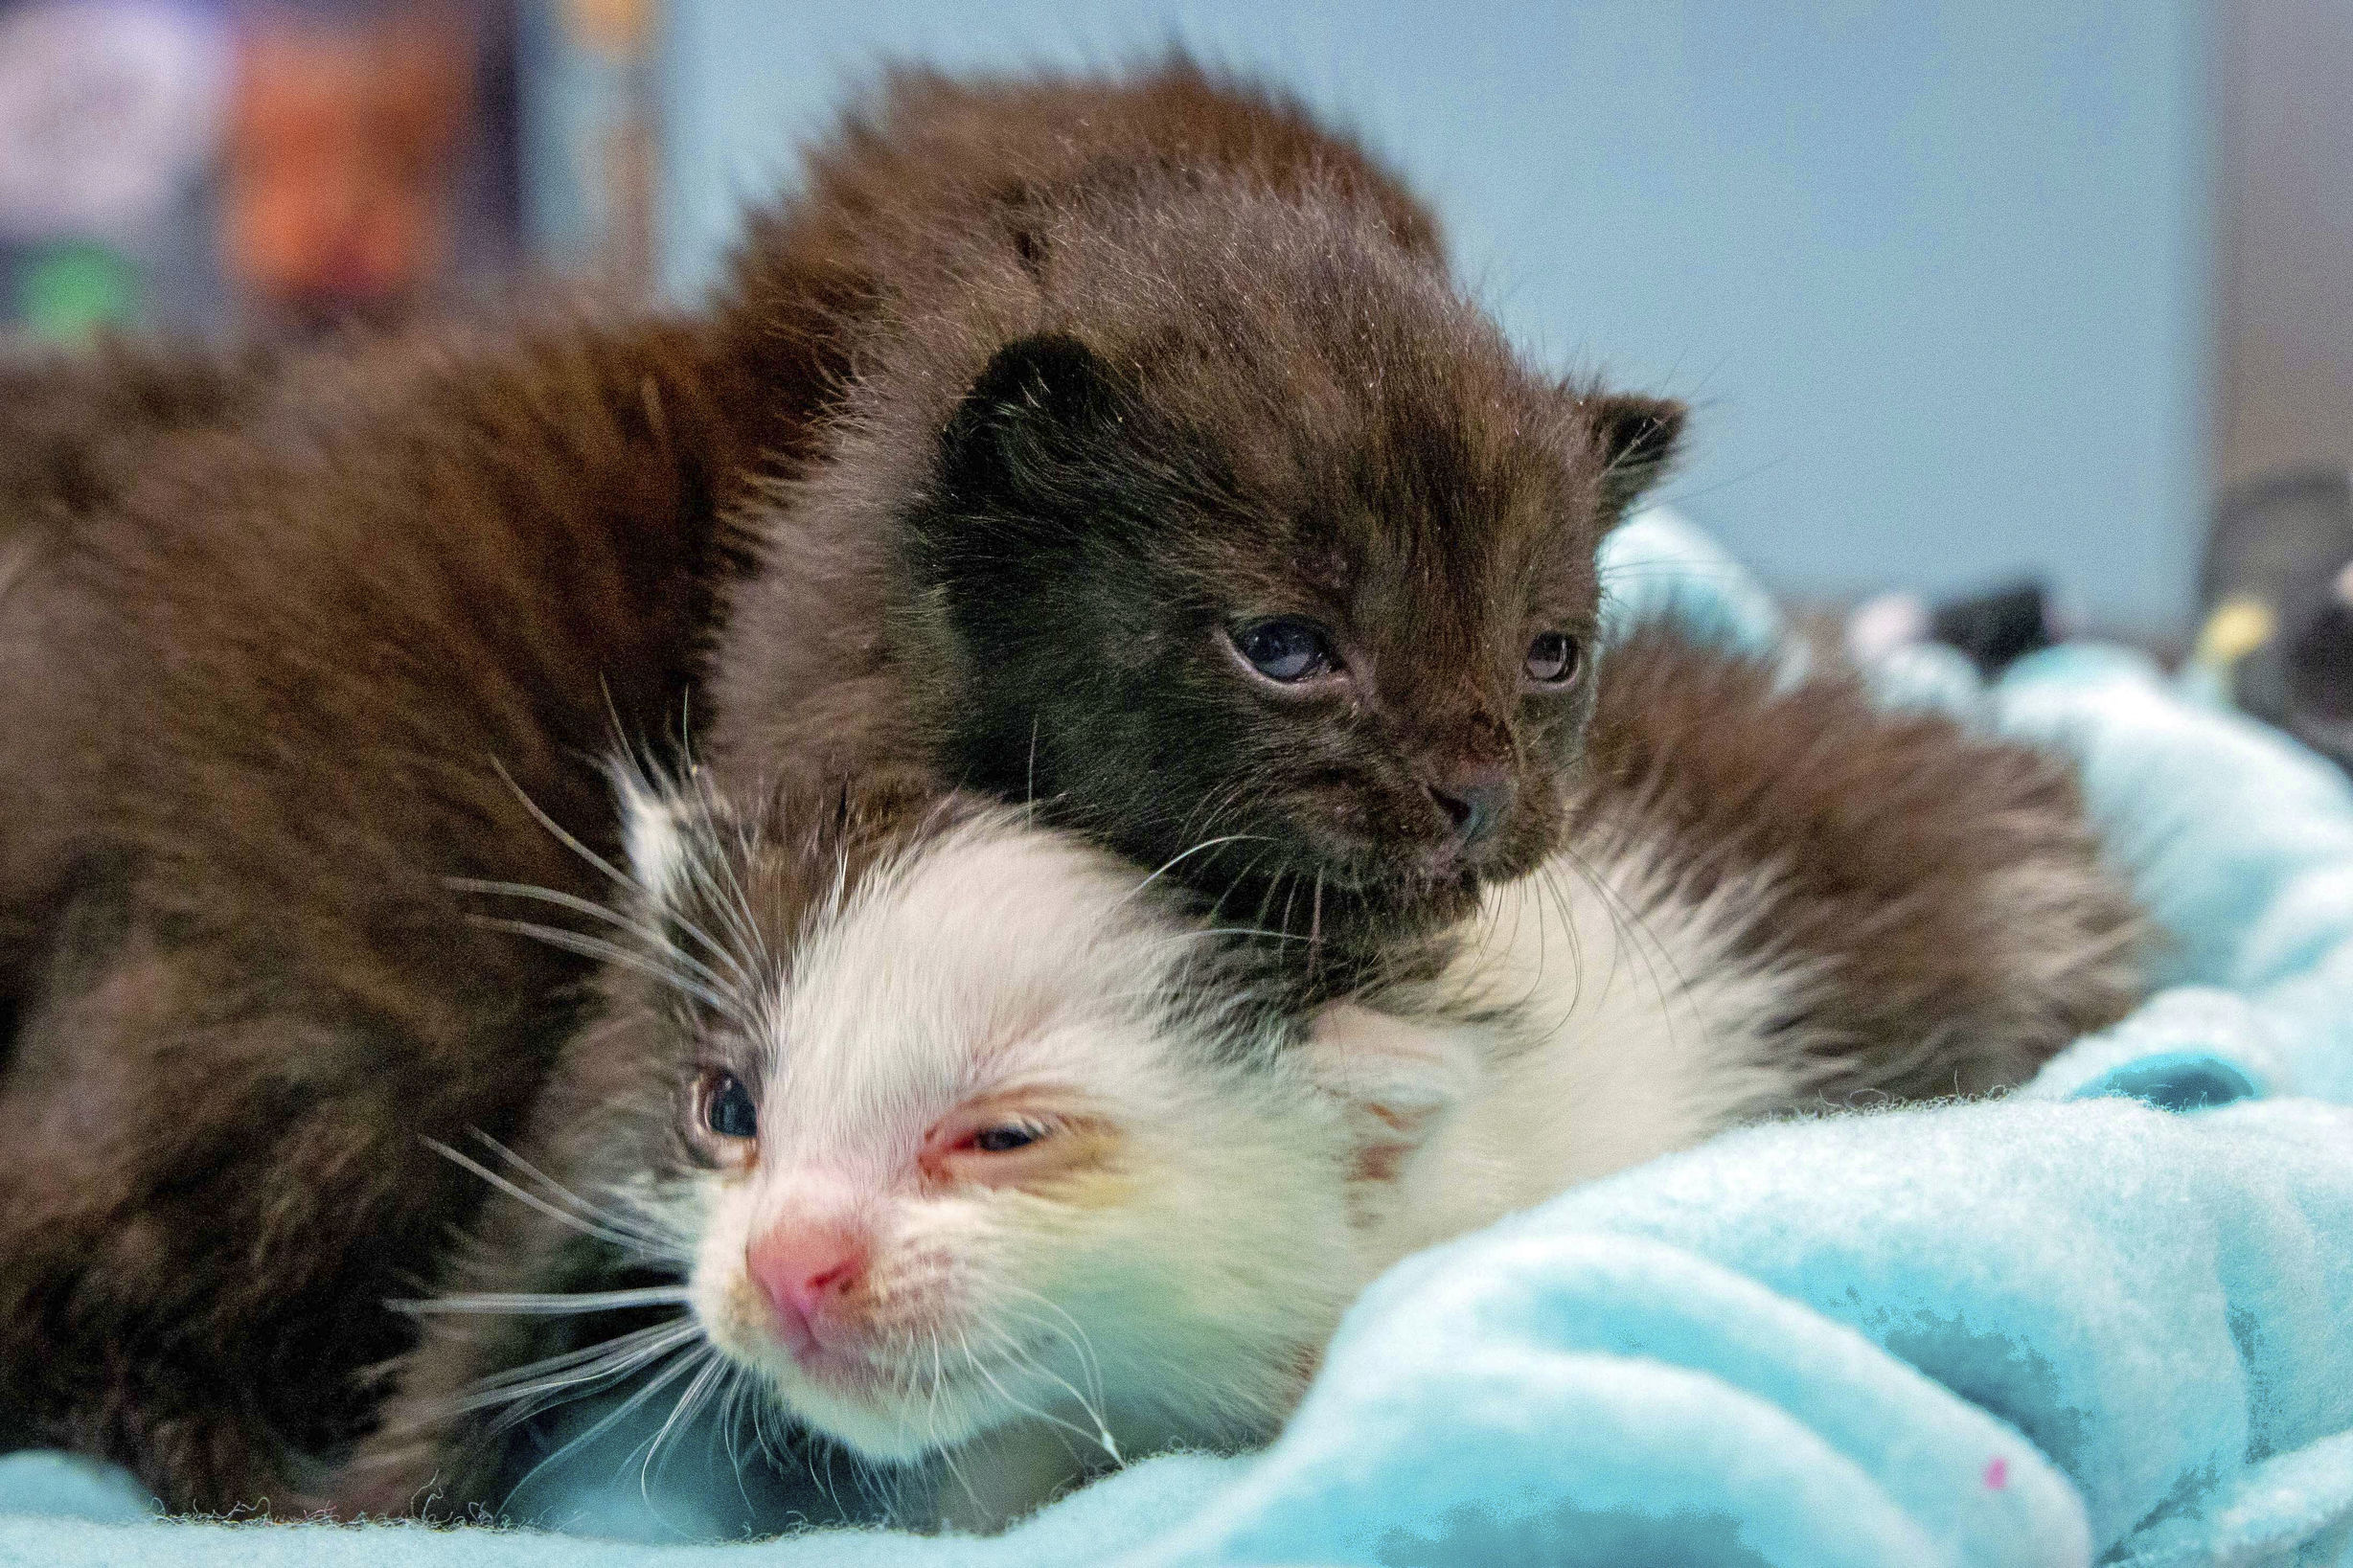 The kittens were found inside a a 60ft steel column